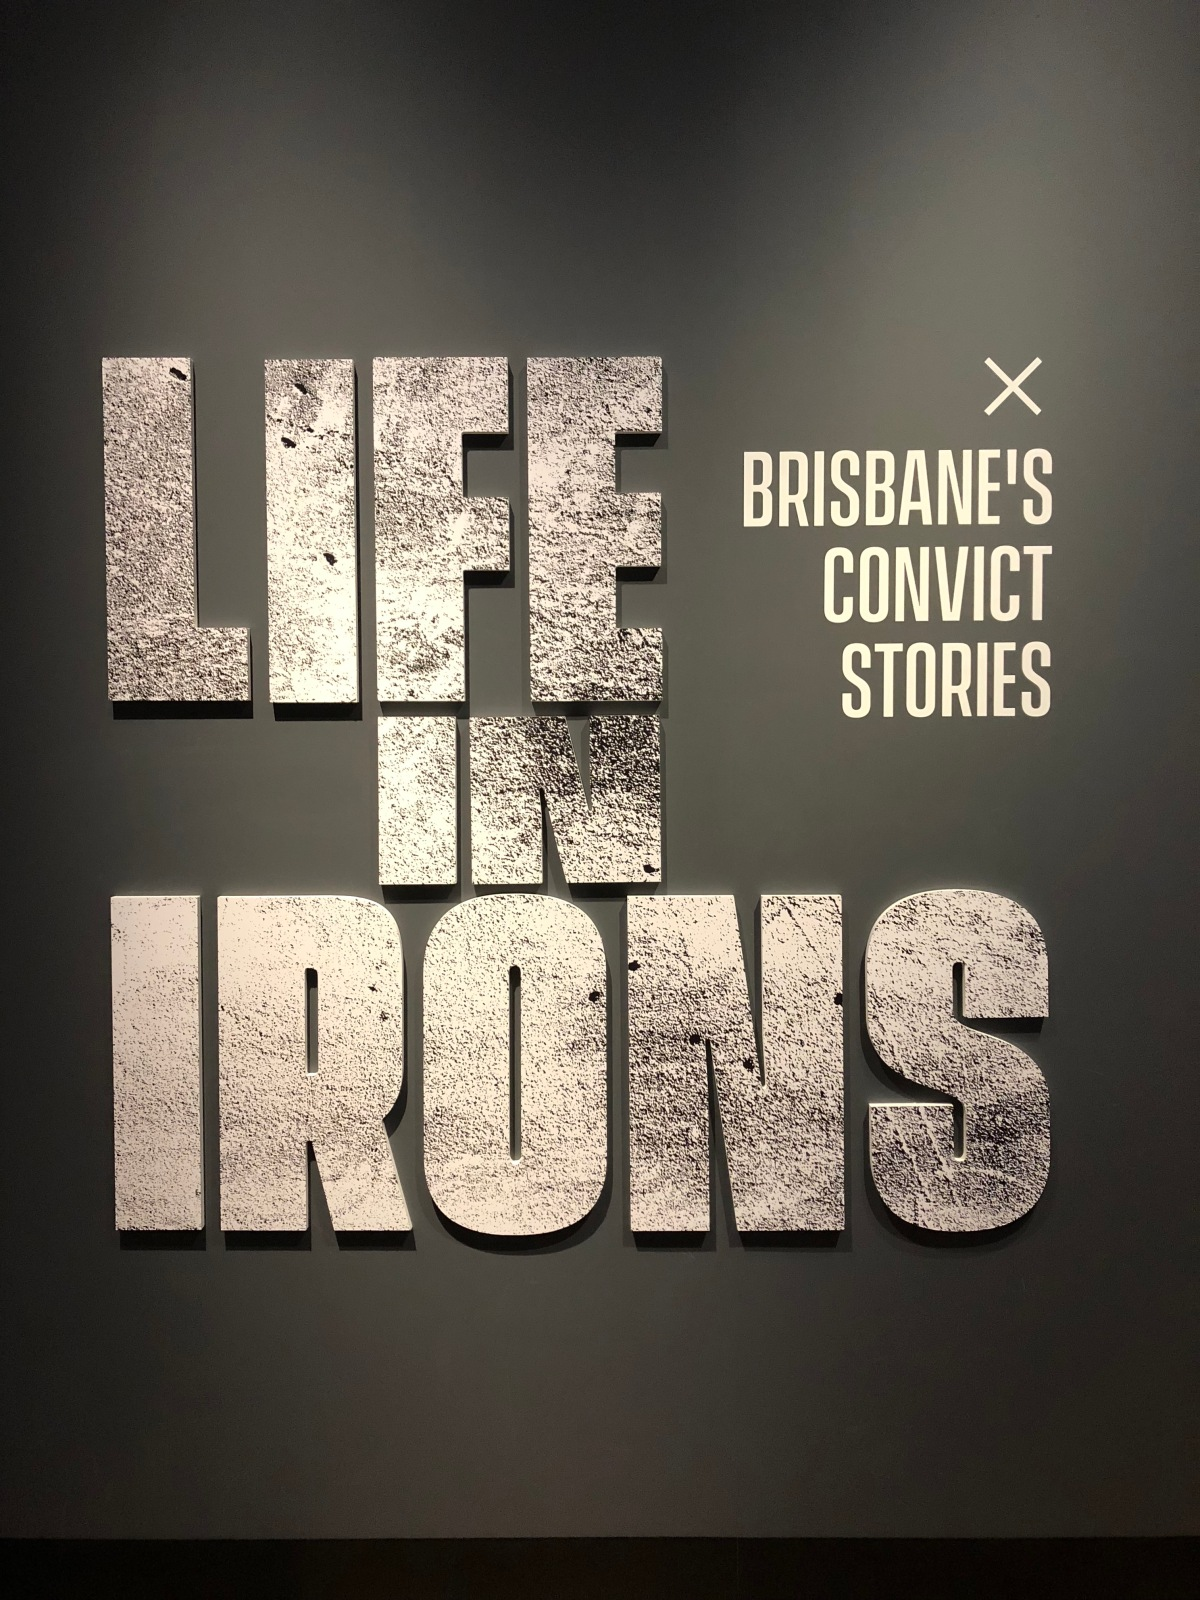 Museum of Brisbane: Life in Irons